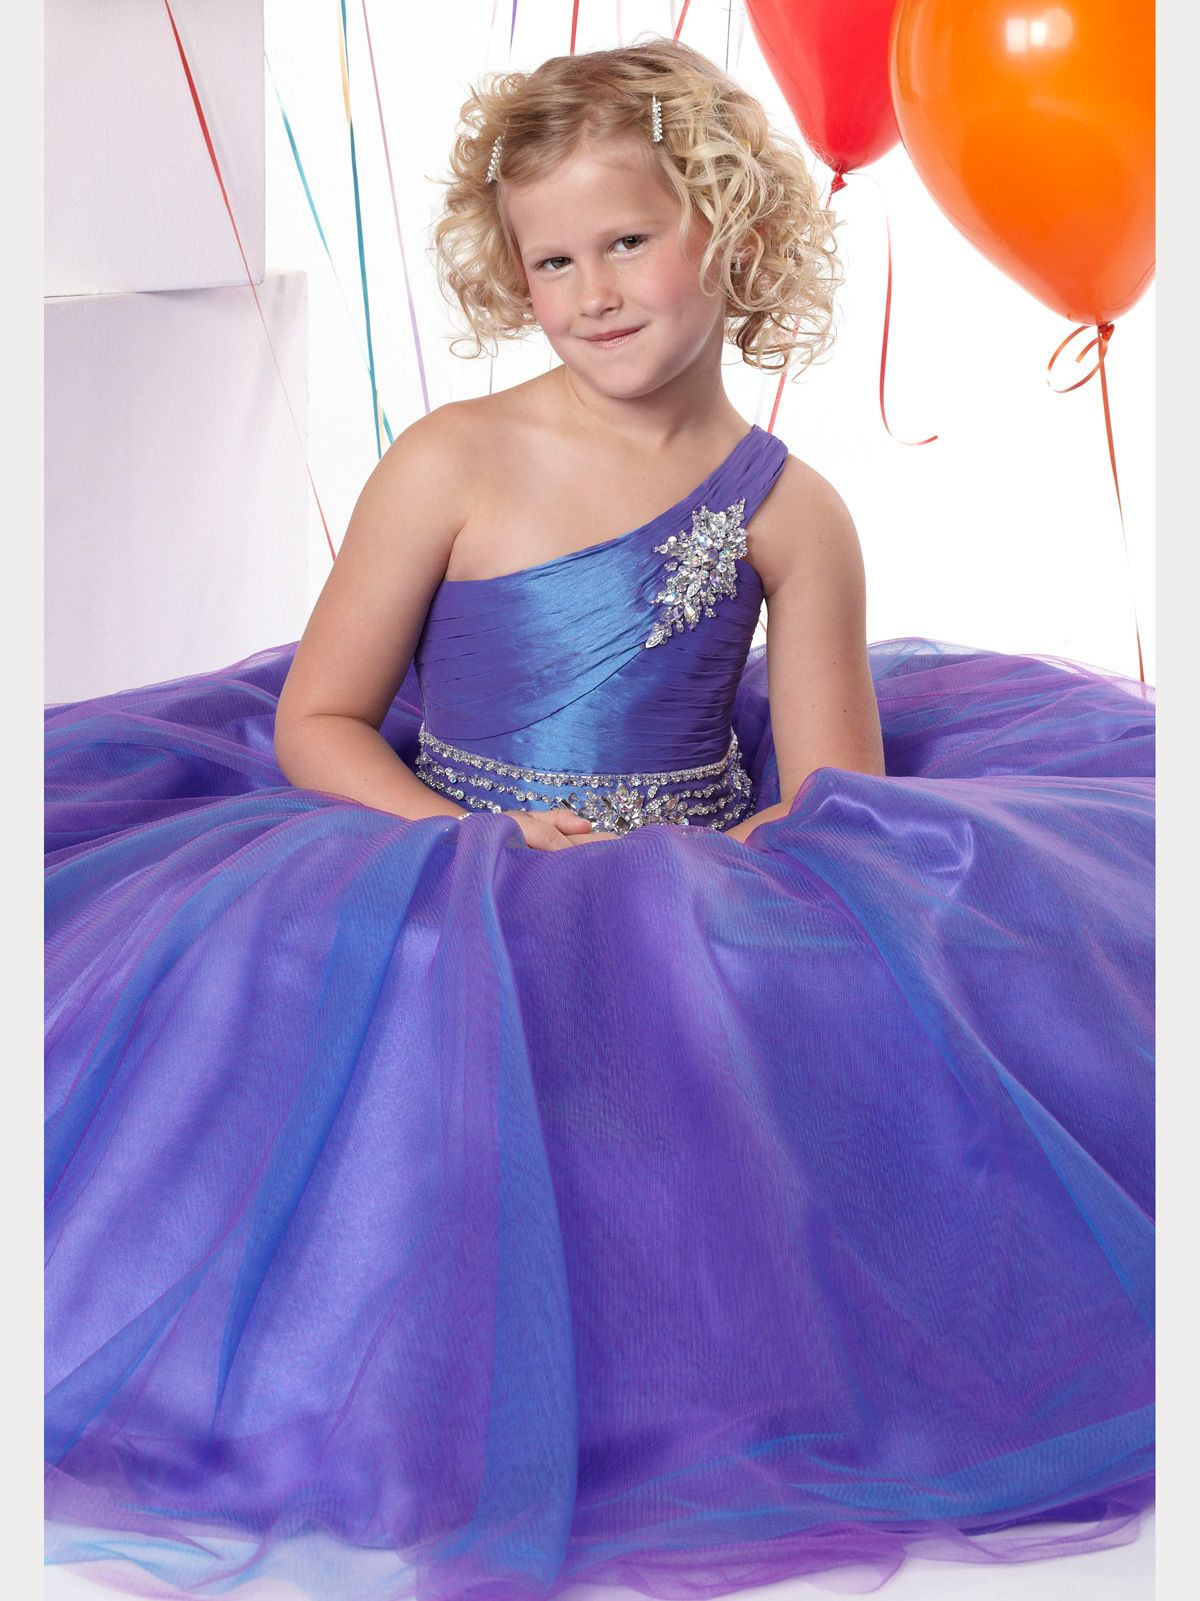 Tiffany Princess Girl Pageant Dress 13281. This ball gown features an asymmetrical neckline accented with cluster of beads, rhinestones and sequins. a pleated bodice with beads and sequin accents and a full tulle skirt. Tailored in Taffeta/Tulle.